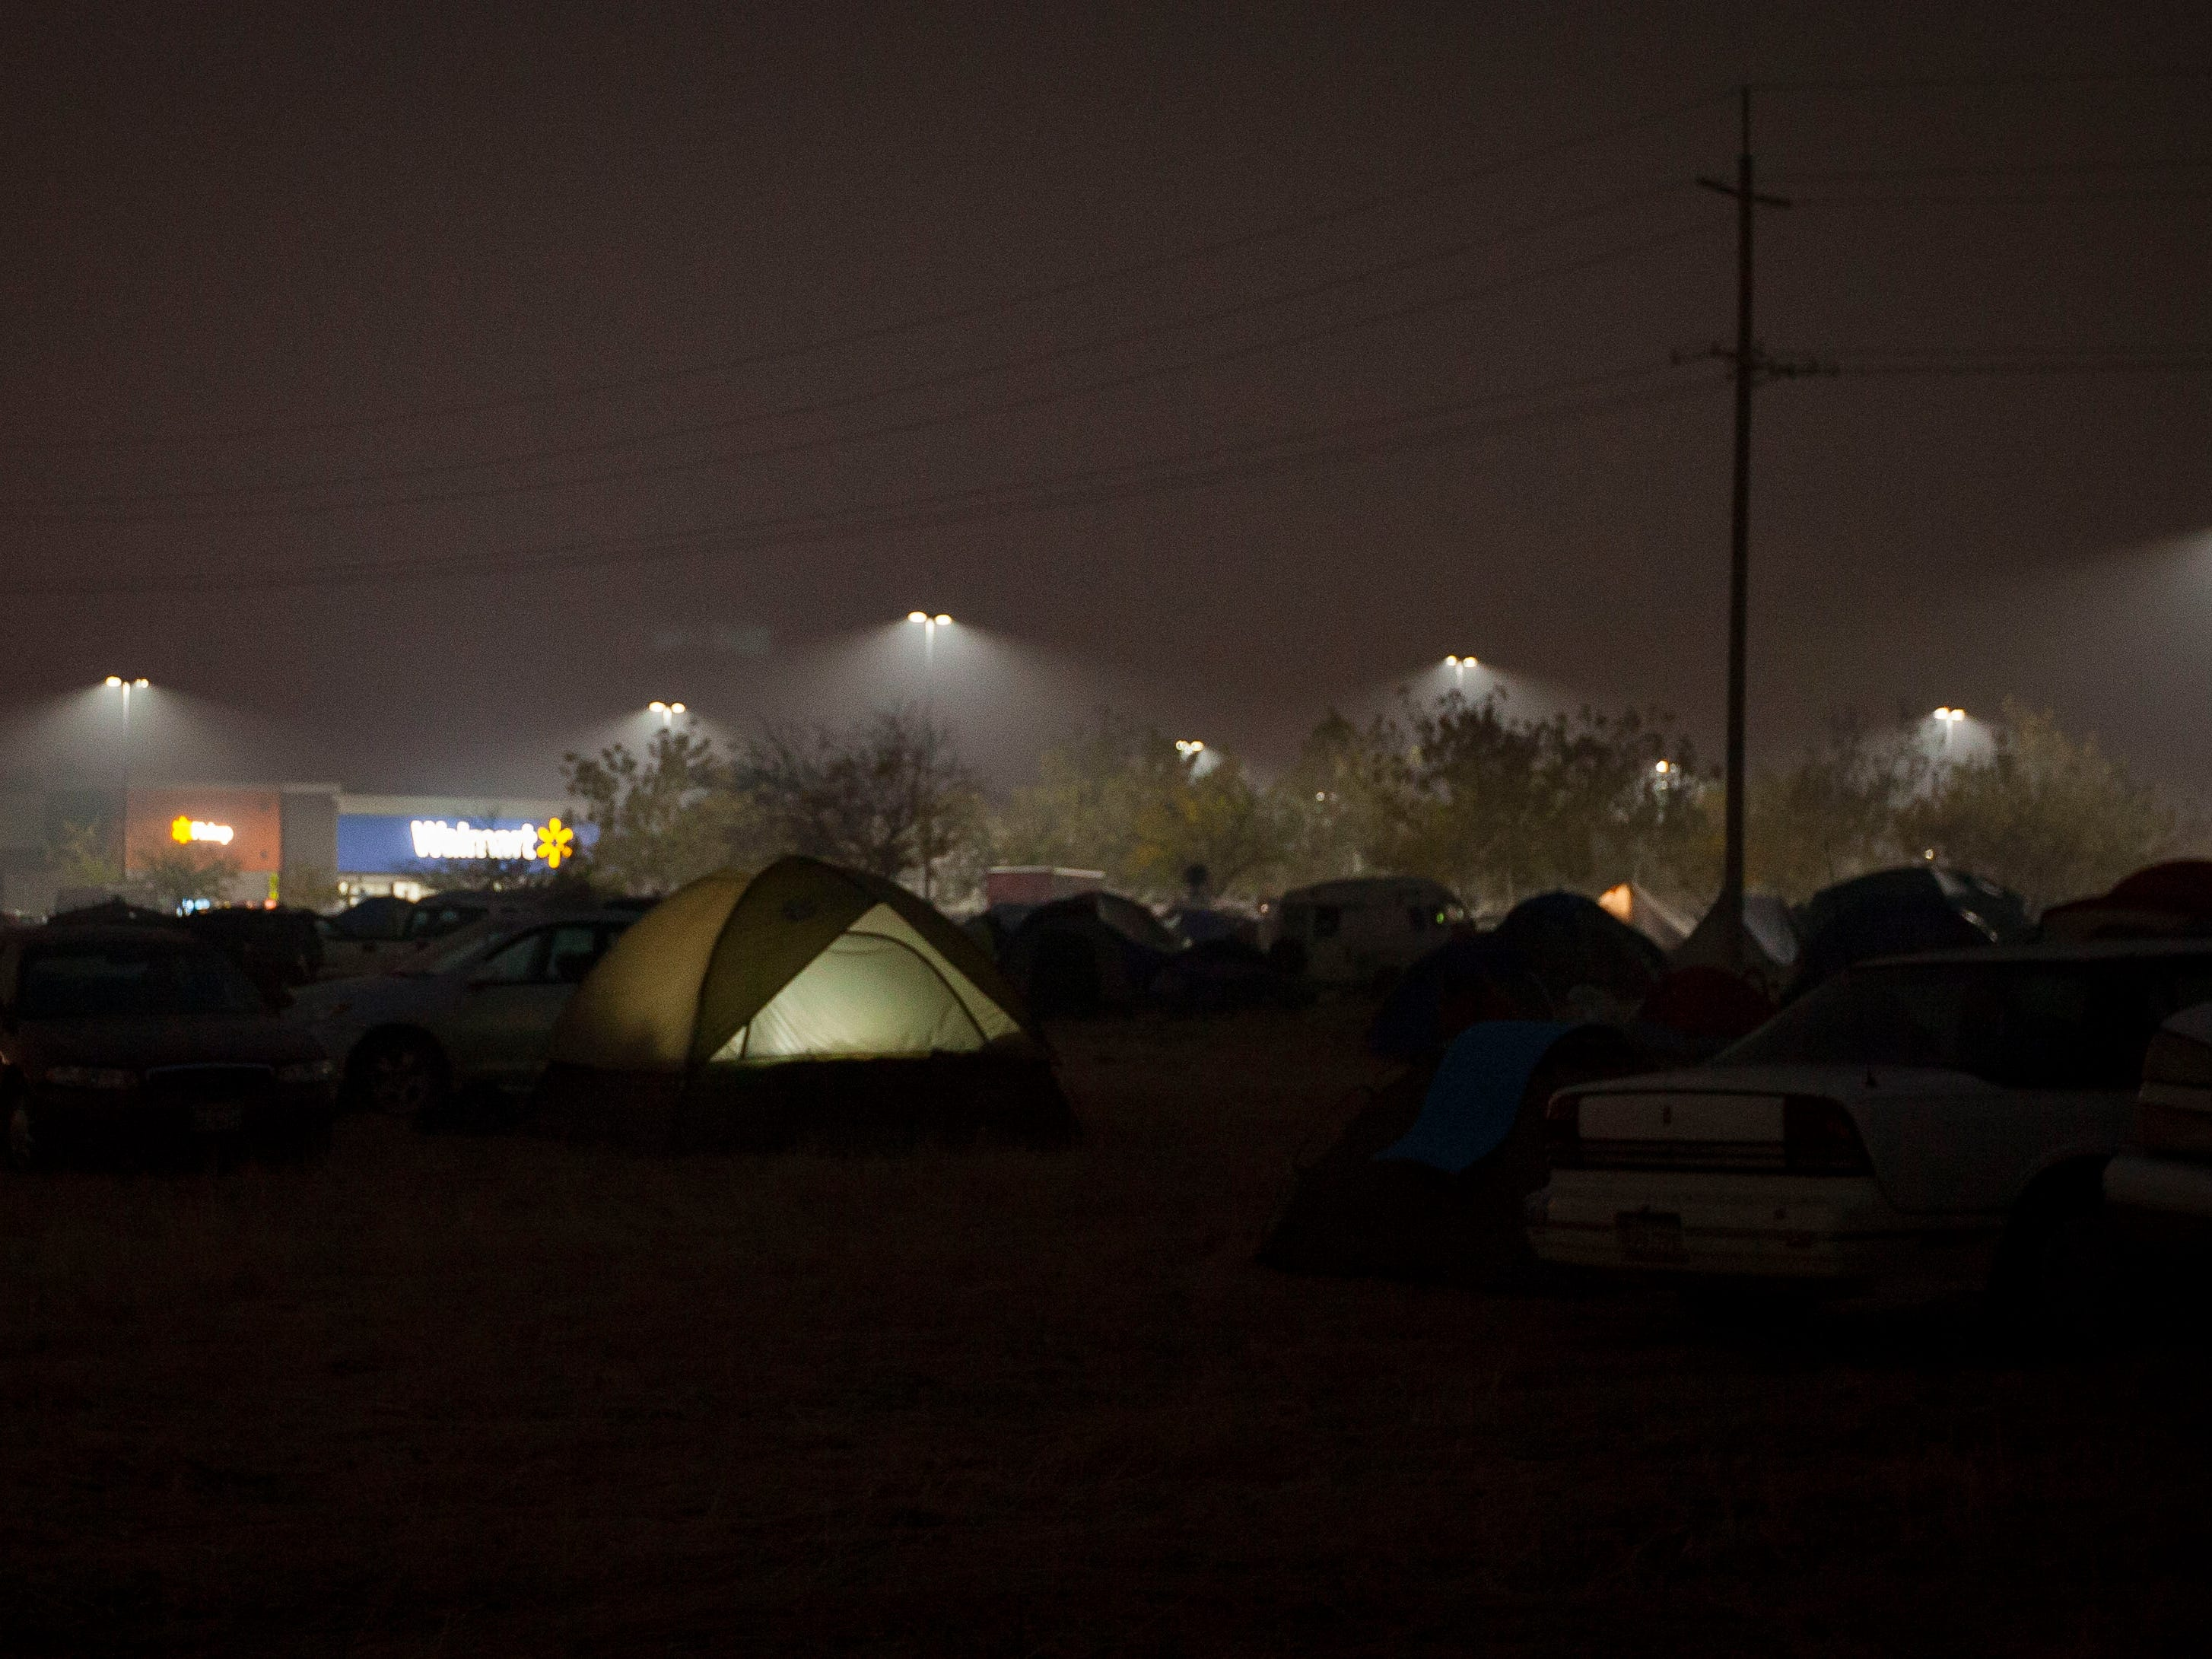 A tent glows from a light inside as people live in a make-shift tent compound next to the Walmart in Chico, Calif. Nov. 15, 2018. The parking lot and field next to it have become a refuge for evacuees of the Camp Fire which devastated Paradise. Officials are closing the area on Sunday and working to find a more sustainable housing solution for those affected by the fire.